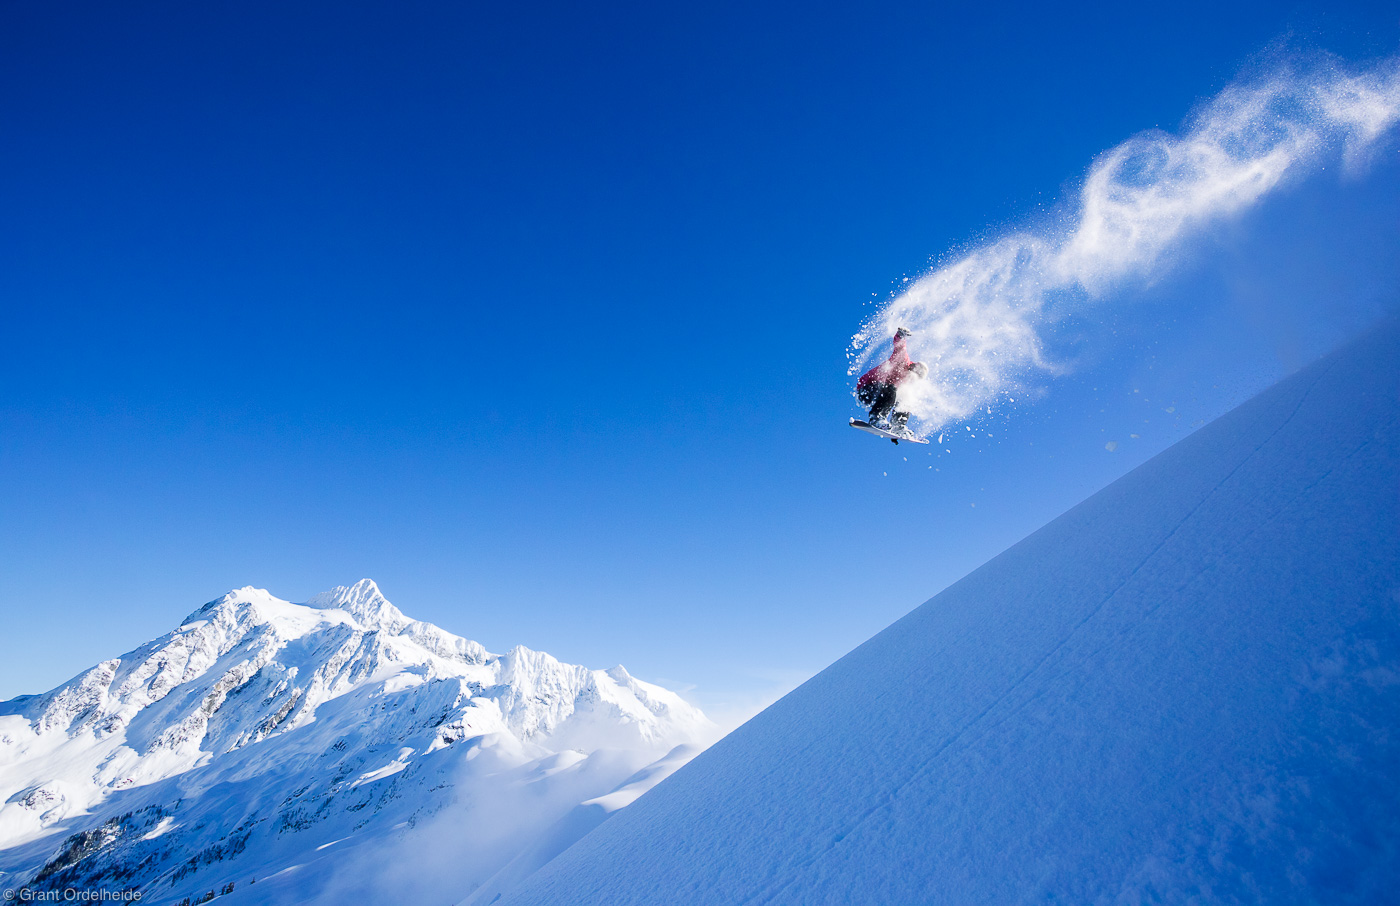 mt. shuksan, backside, one-eighty, snowboarder, baker, washington, usa, grab, method, natural, wind, lip, feature, photo